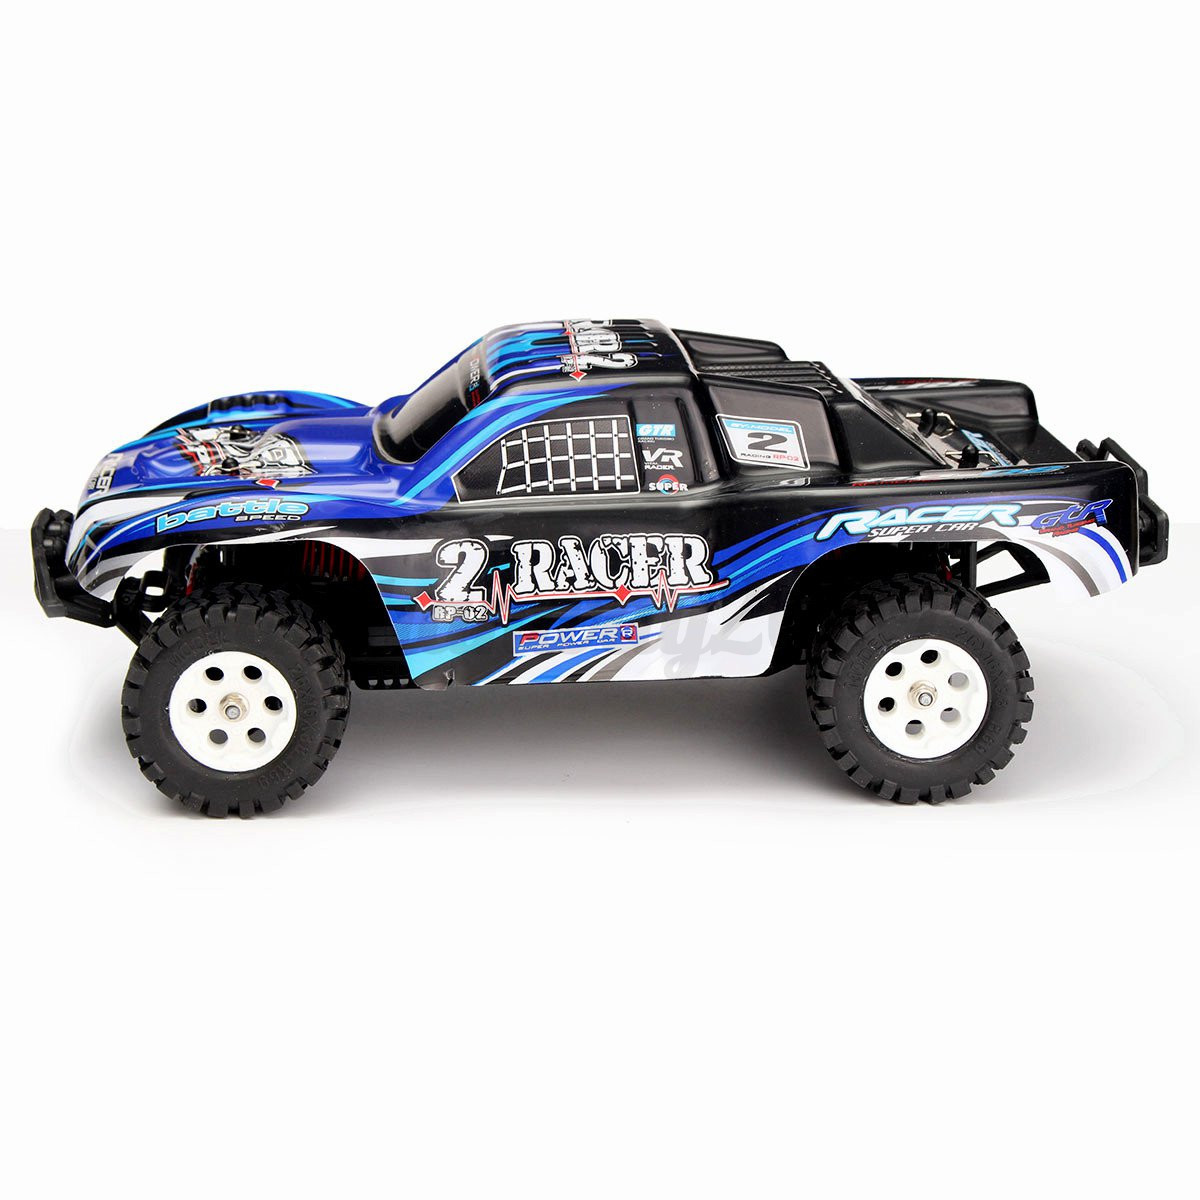 1 16 4wd fast electric rc remote control car off road truck 2 4ghz full scale ebay. Black Bedroom Furniture Sets. Home Design Ideas